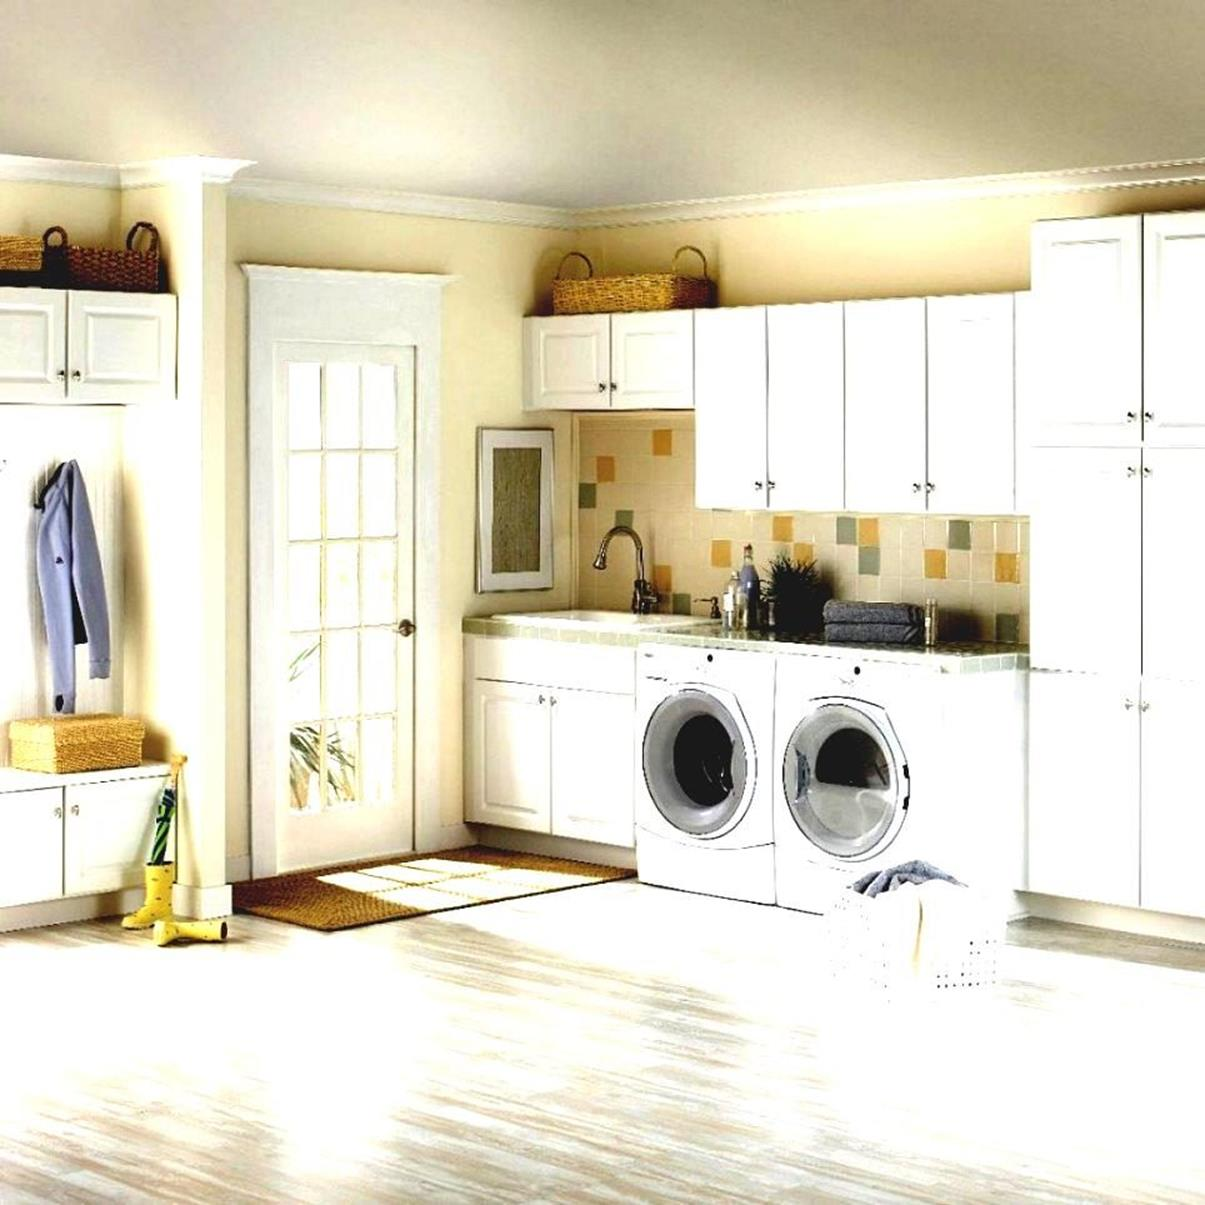 Best Cheap IKEA Cabinets Laundry Room Storage Ideas 8